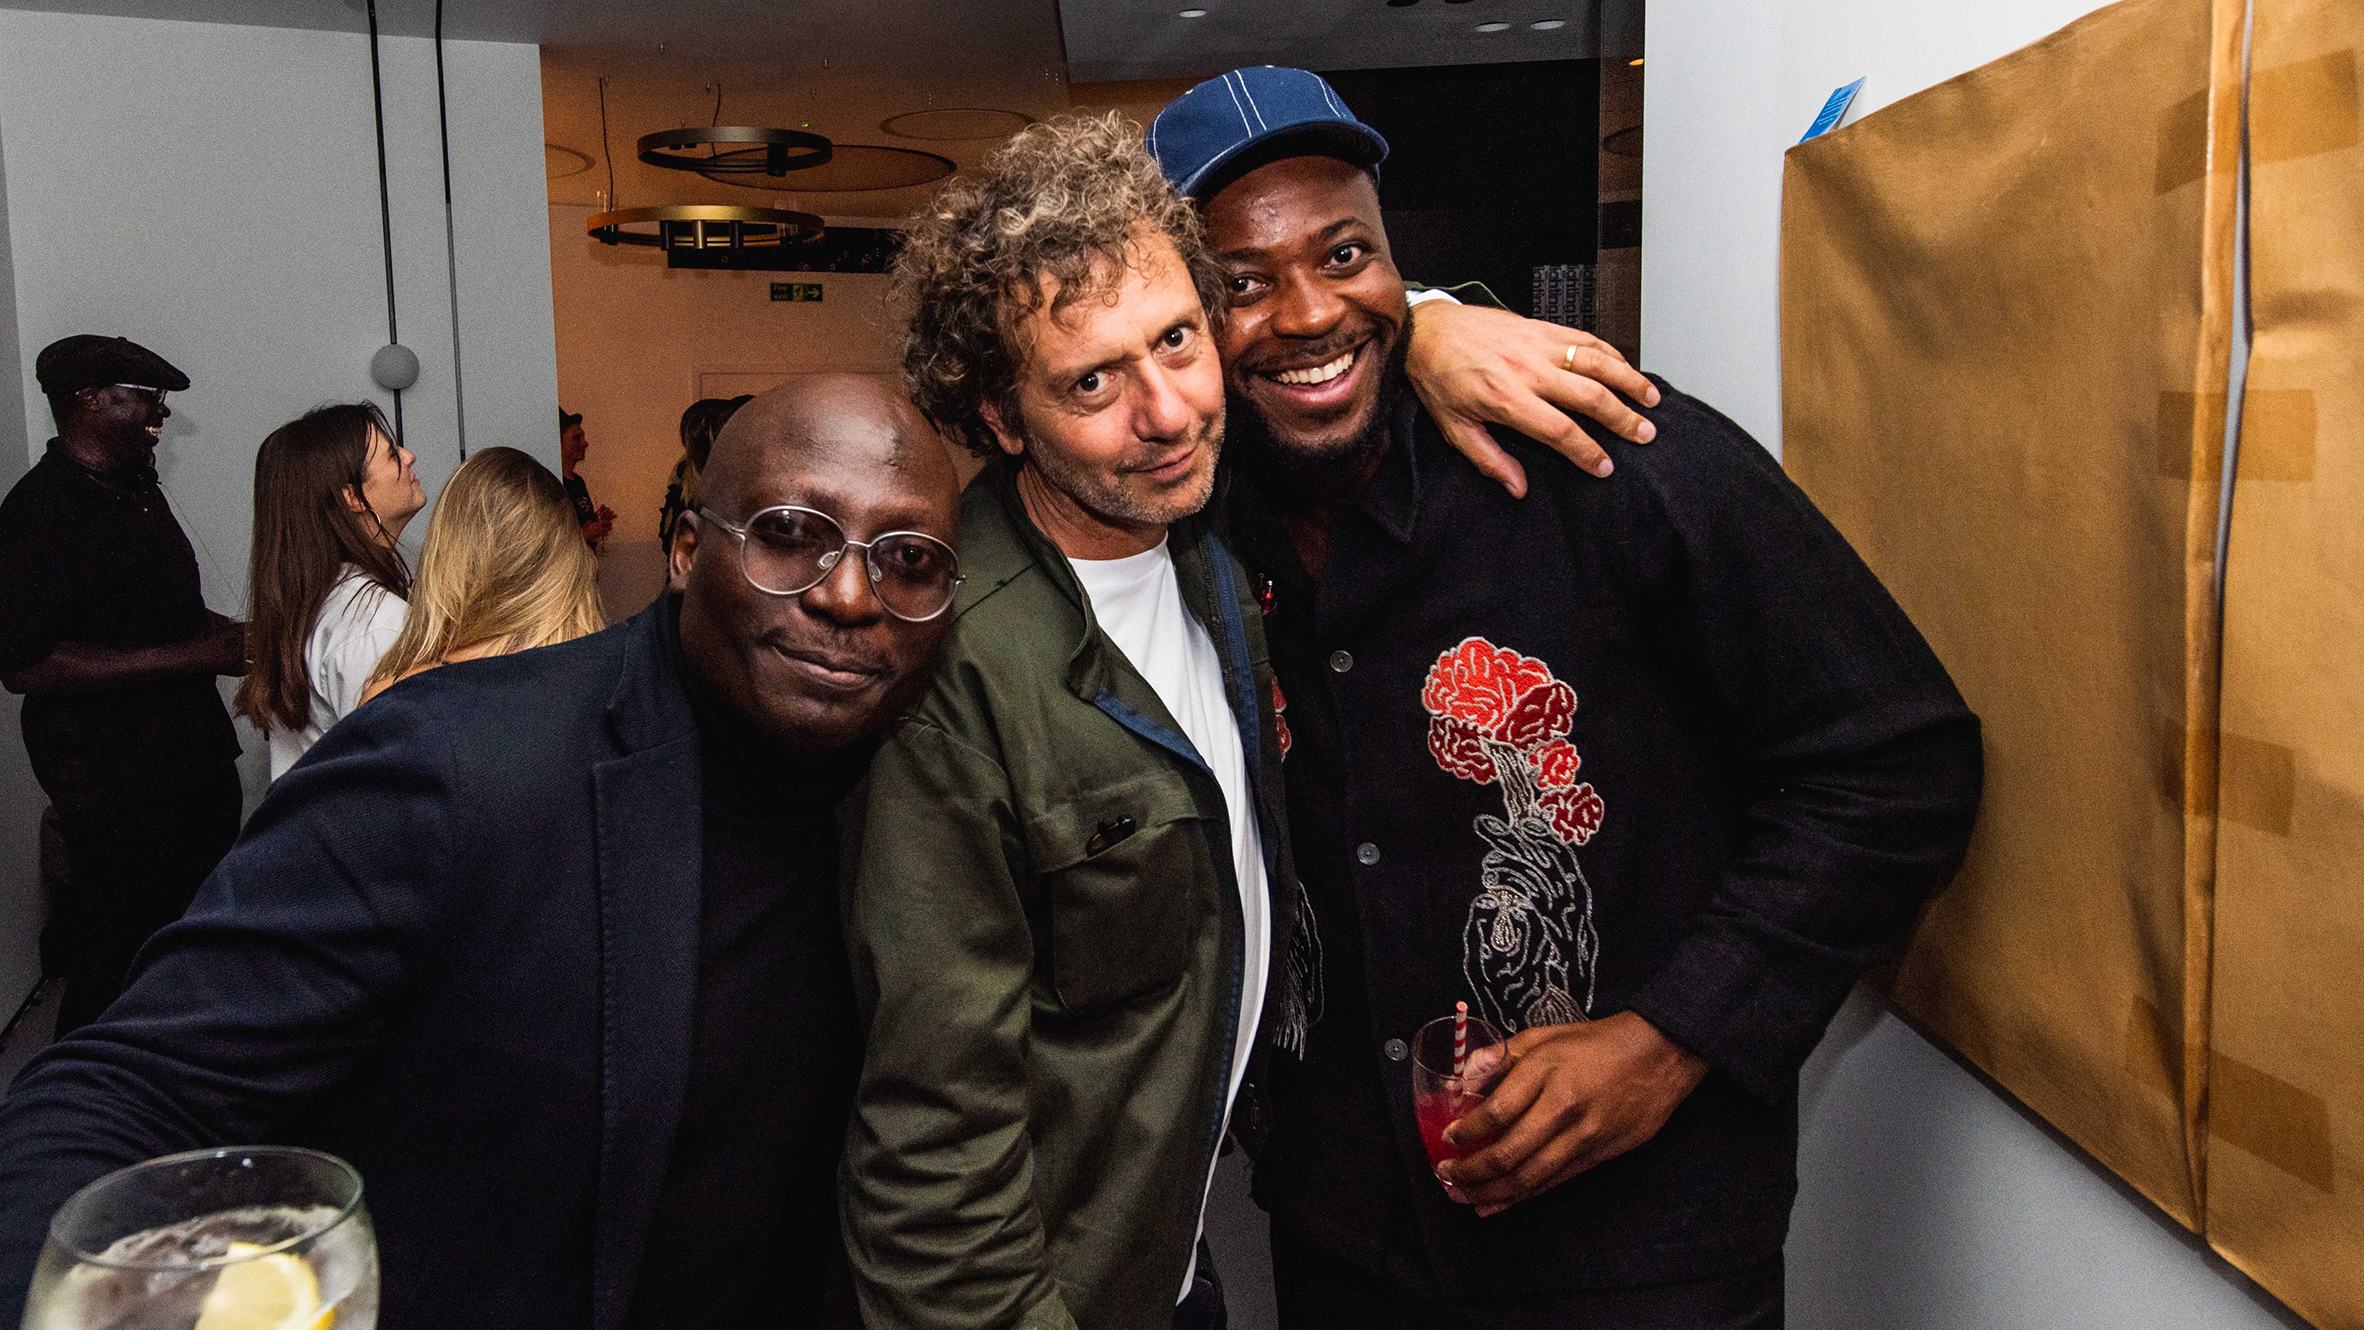 NLÉ founder Kunlé Adeyemi with Dezeen's Marcus Fairs and designer Yinka Ilori